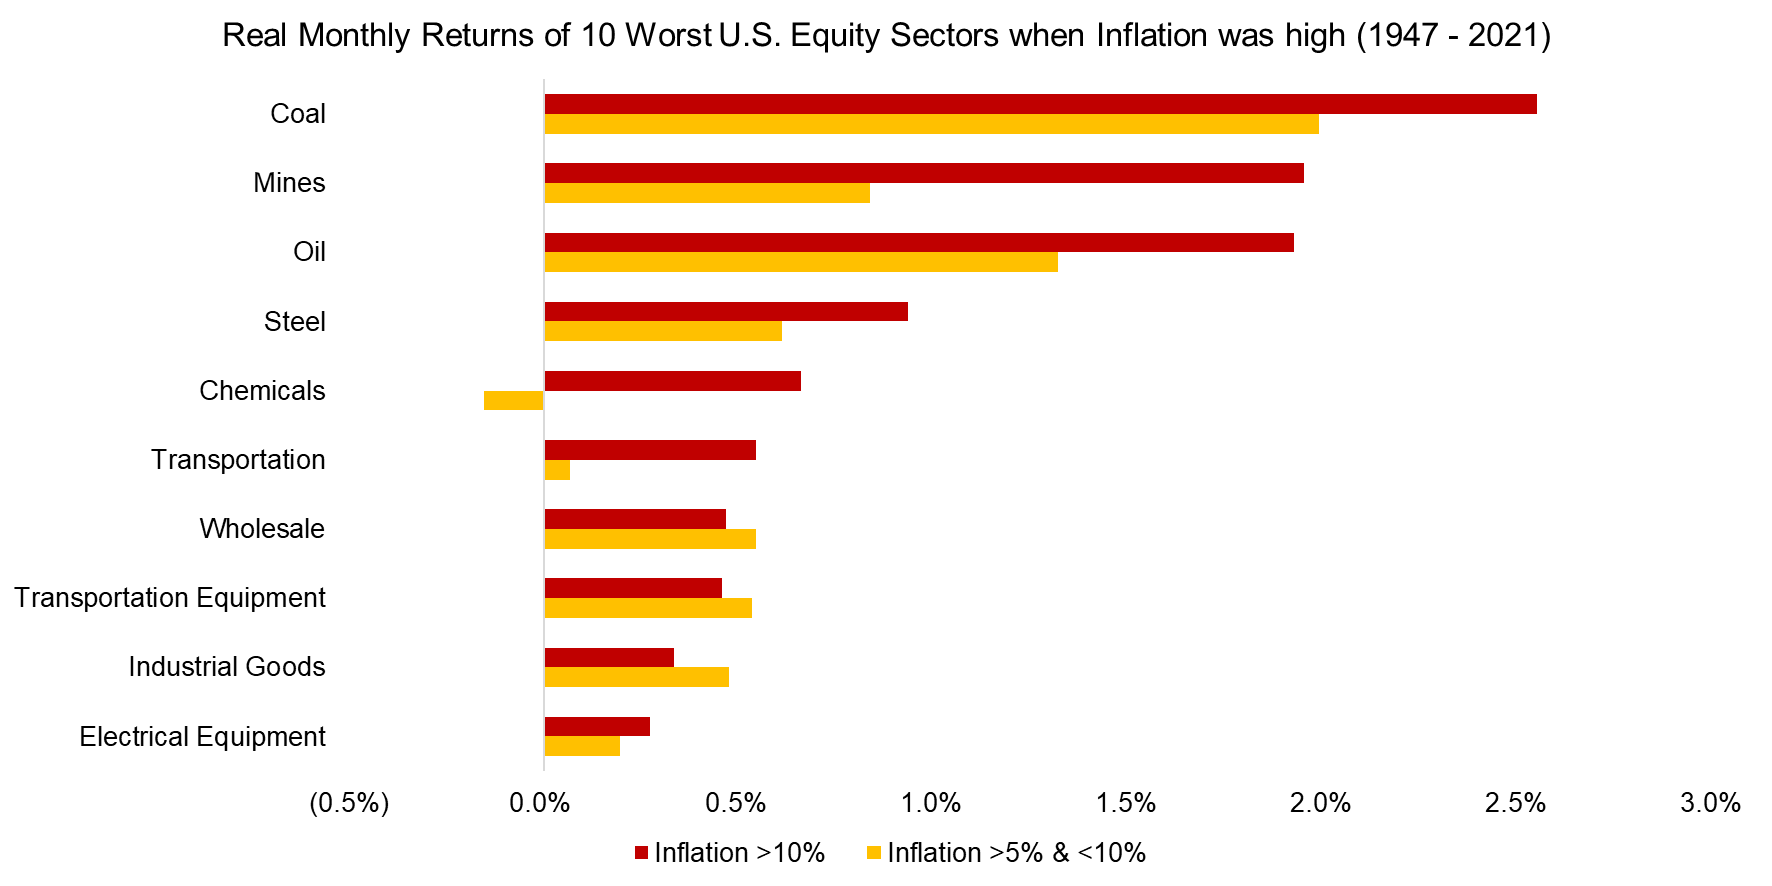 Real Monthly Returns of 10 Best U.S. Equity Sectors when Inflation was high (1947 - 2021)